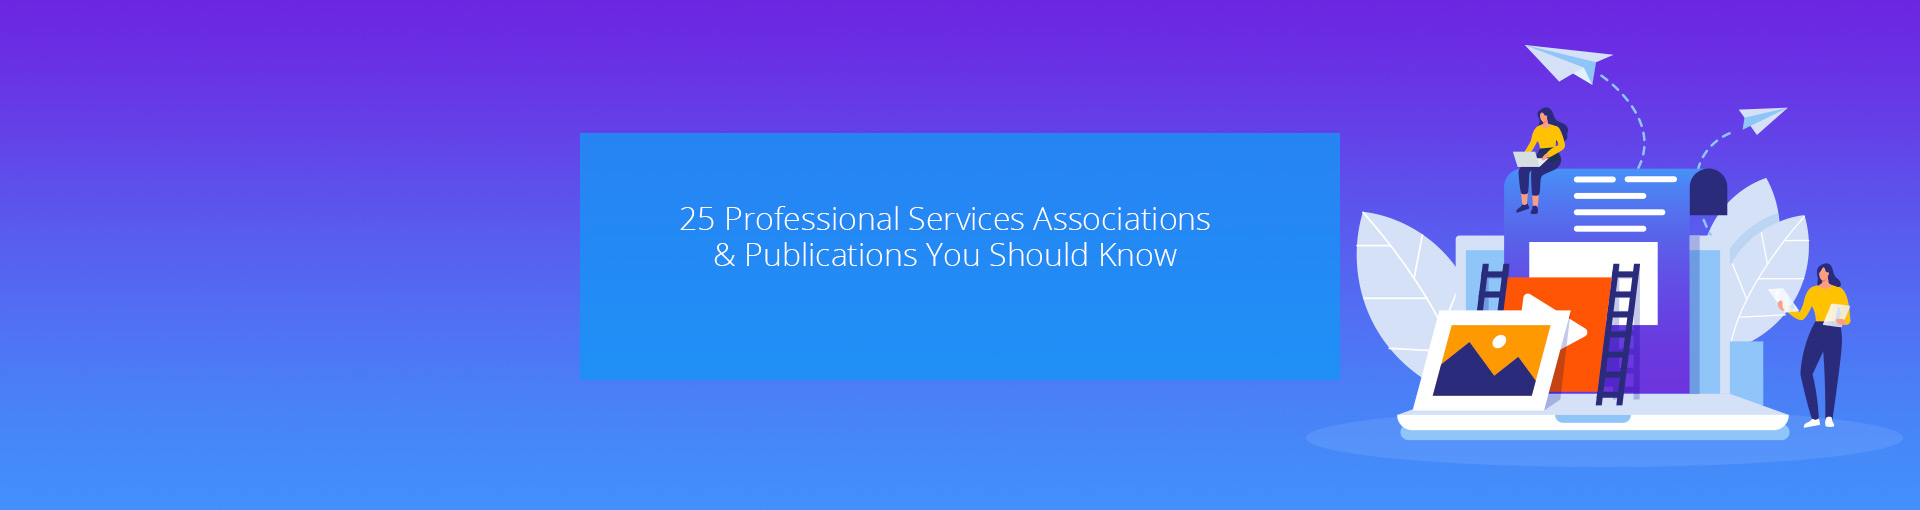 25 Professional Services Associations & Publications You Should Know